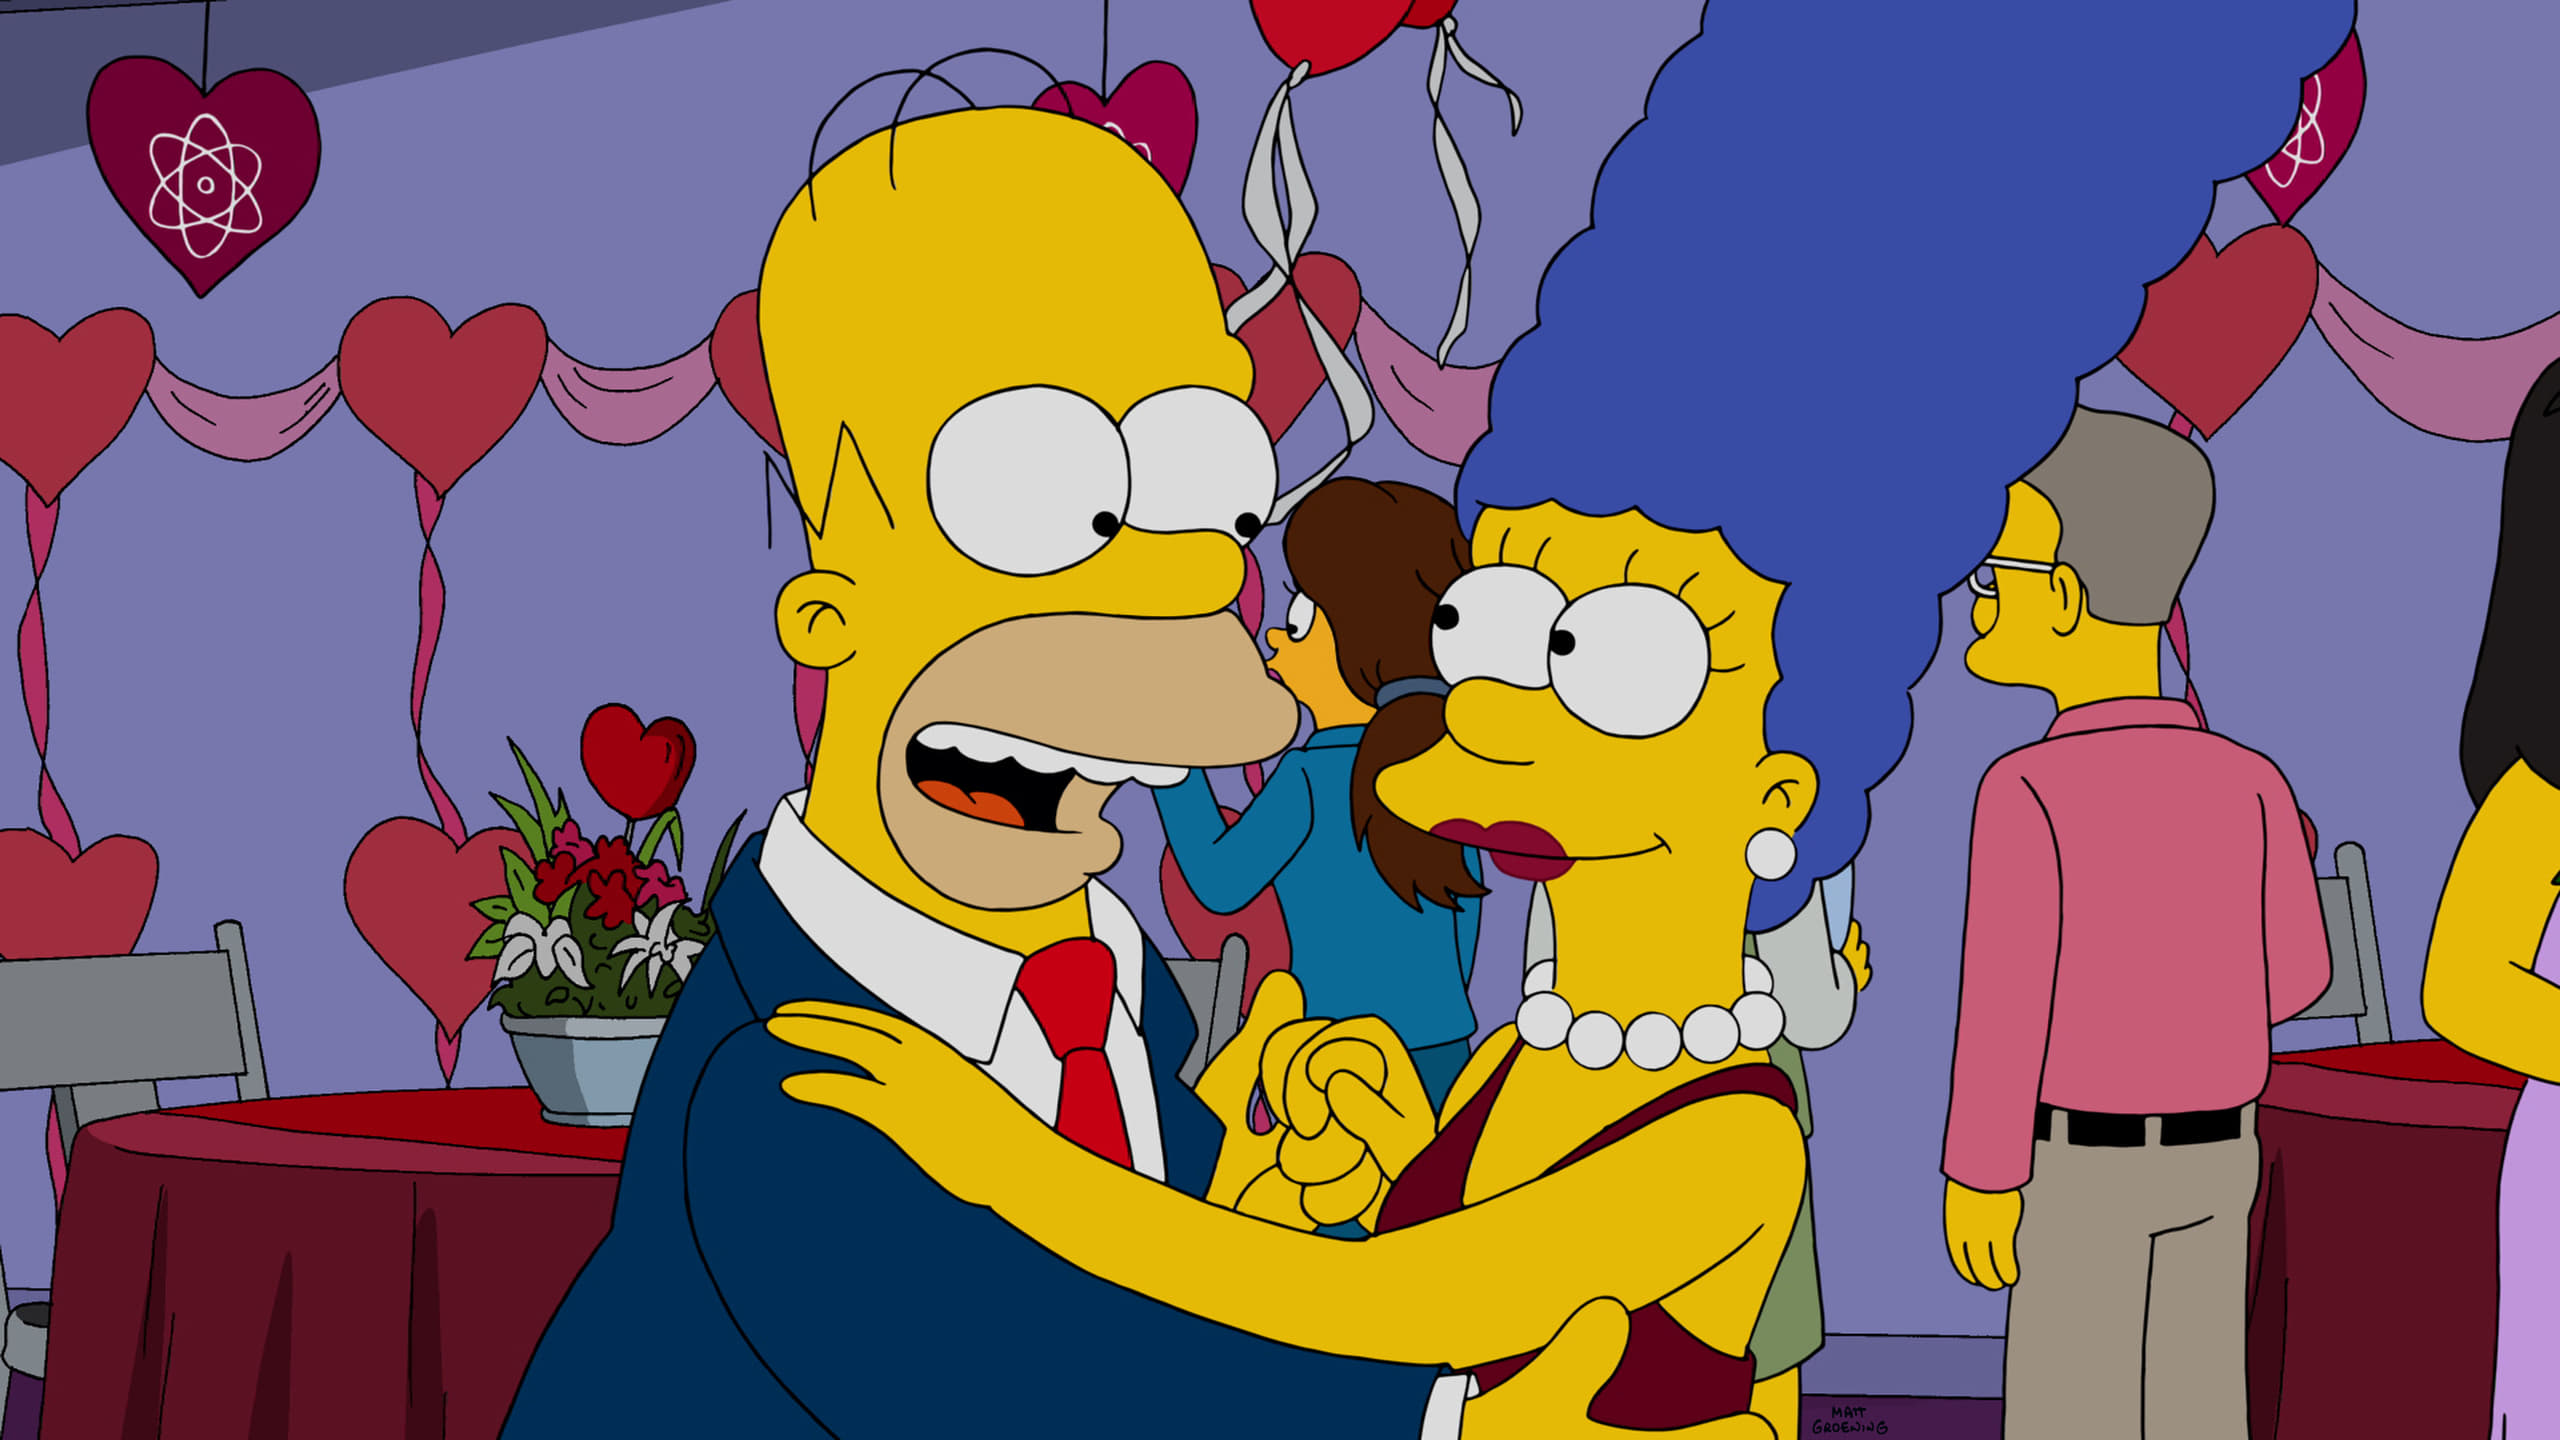 The Simpsons - Season 27 Episode 13 : Love is in the N2-O2-Ar-CO2-Ne-He-CH4